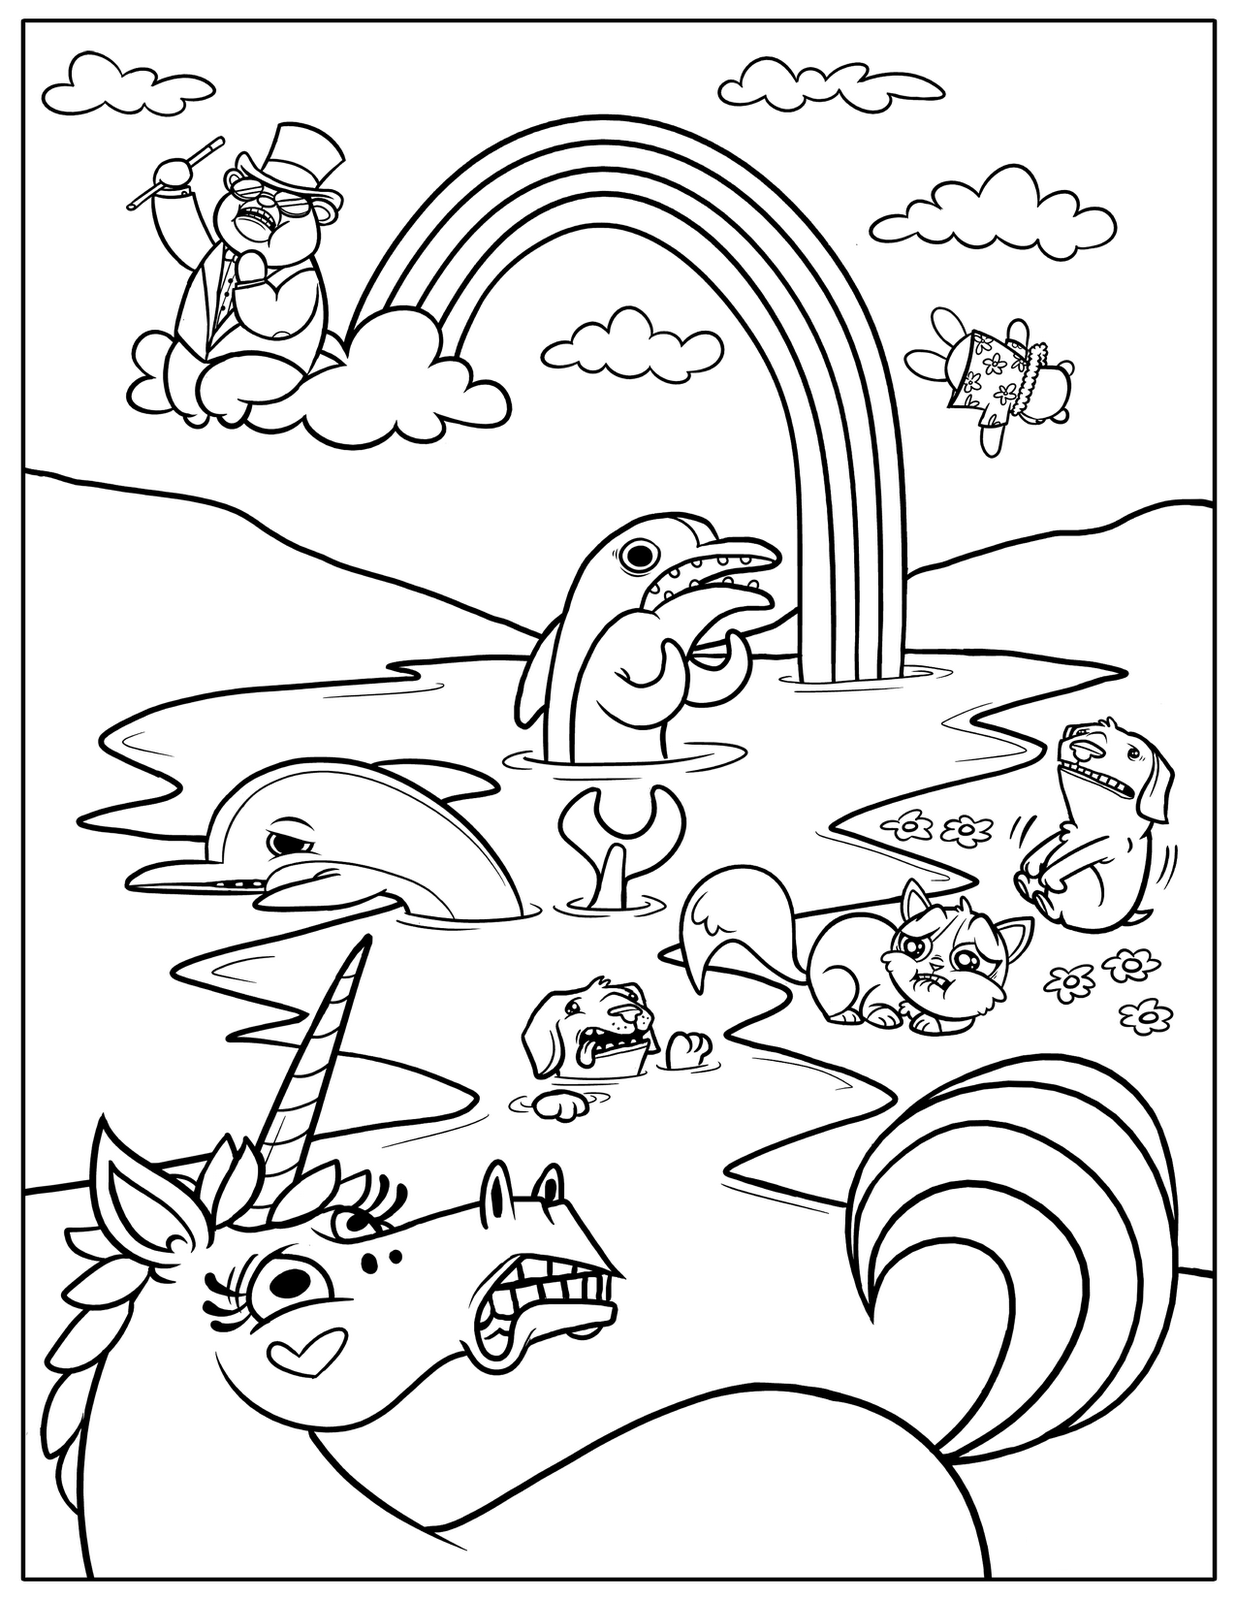 Free printable rainbow coloring pages for kids for Fun coloring pages for kids